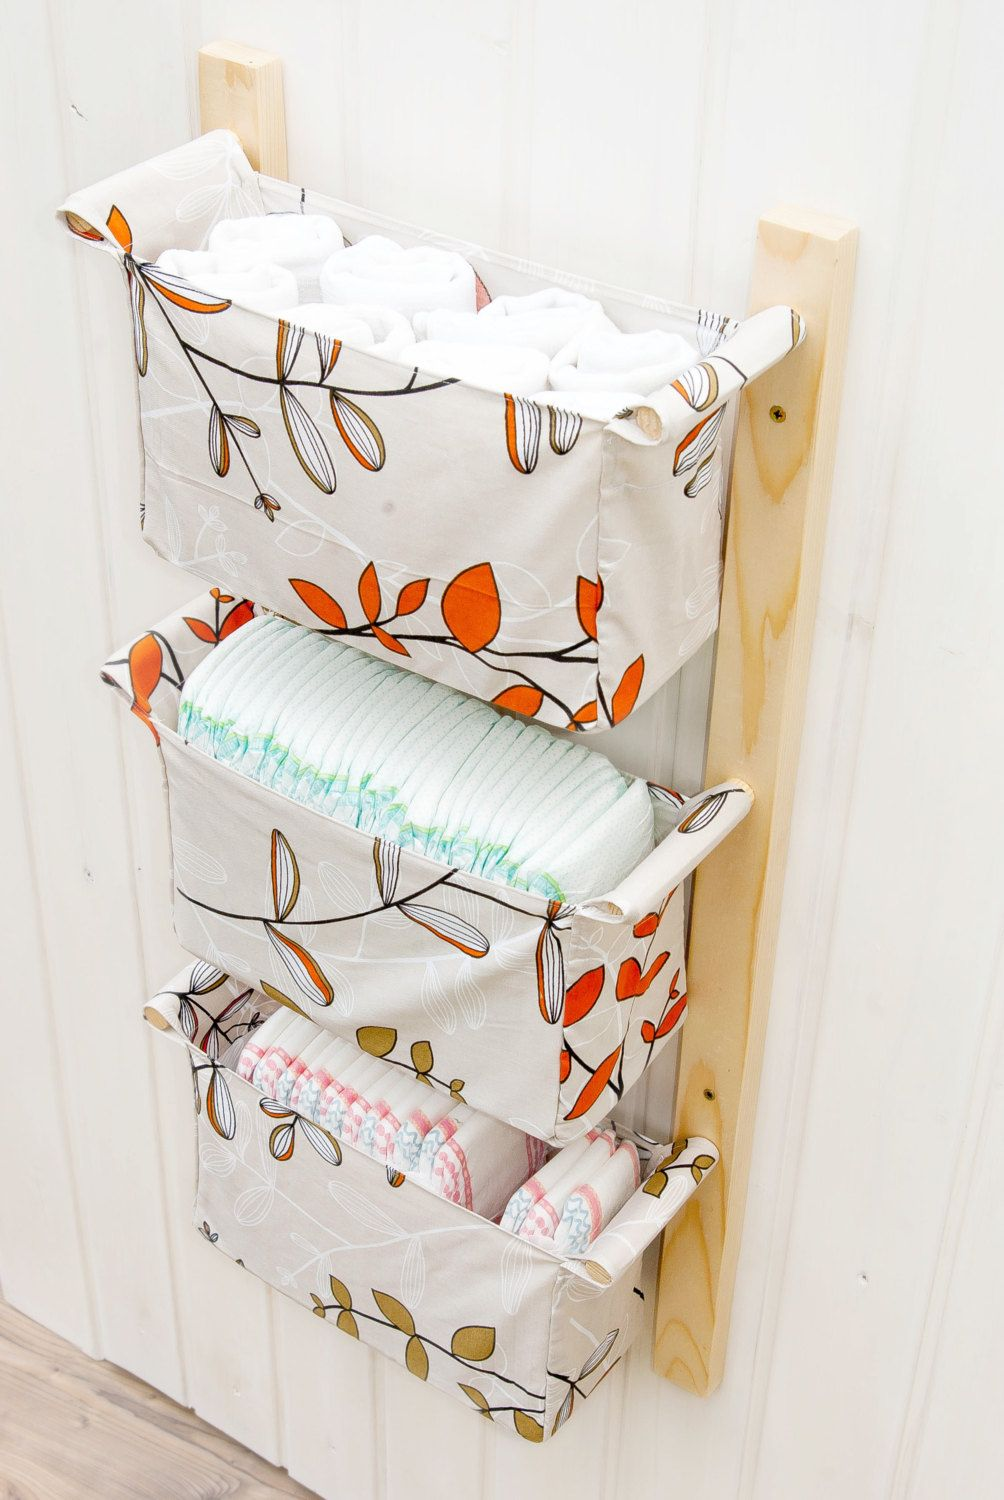 Wall hanging storage with 3 baskets. I would attach this to the side of the changing table and paint the wood to blend. & Wall hanging storage with 3 baskets. I would attach this to the side ...